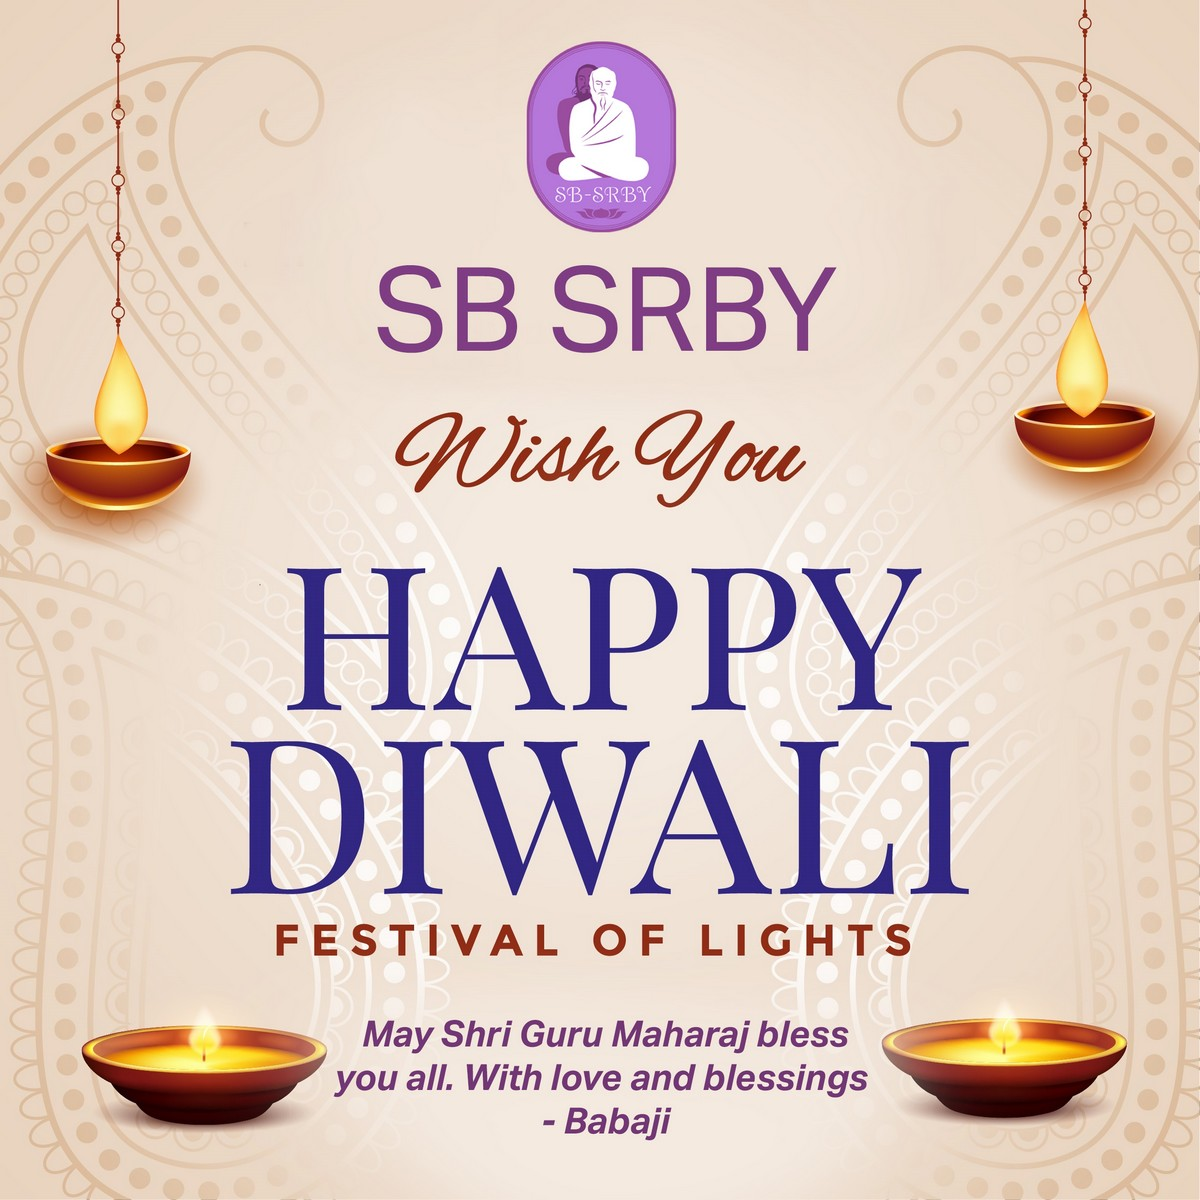 Dewali Greeting November 2020